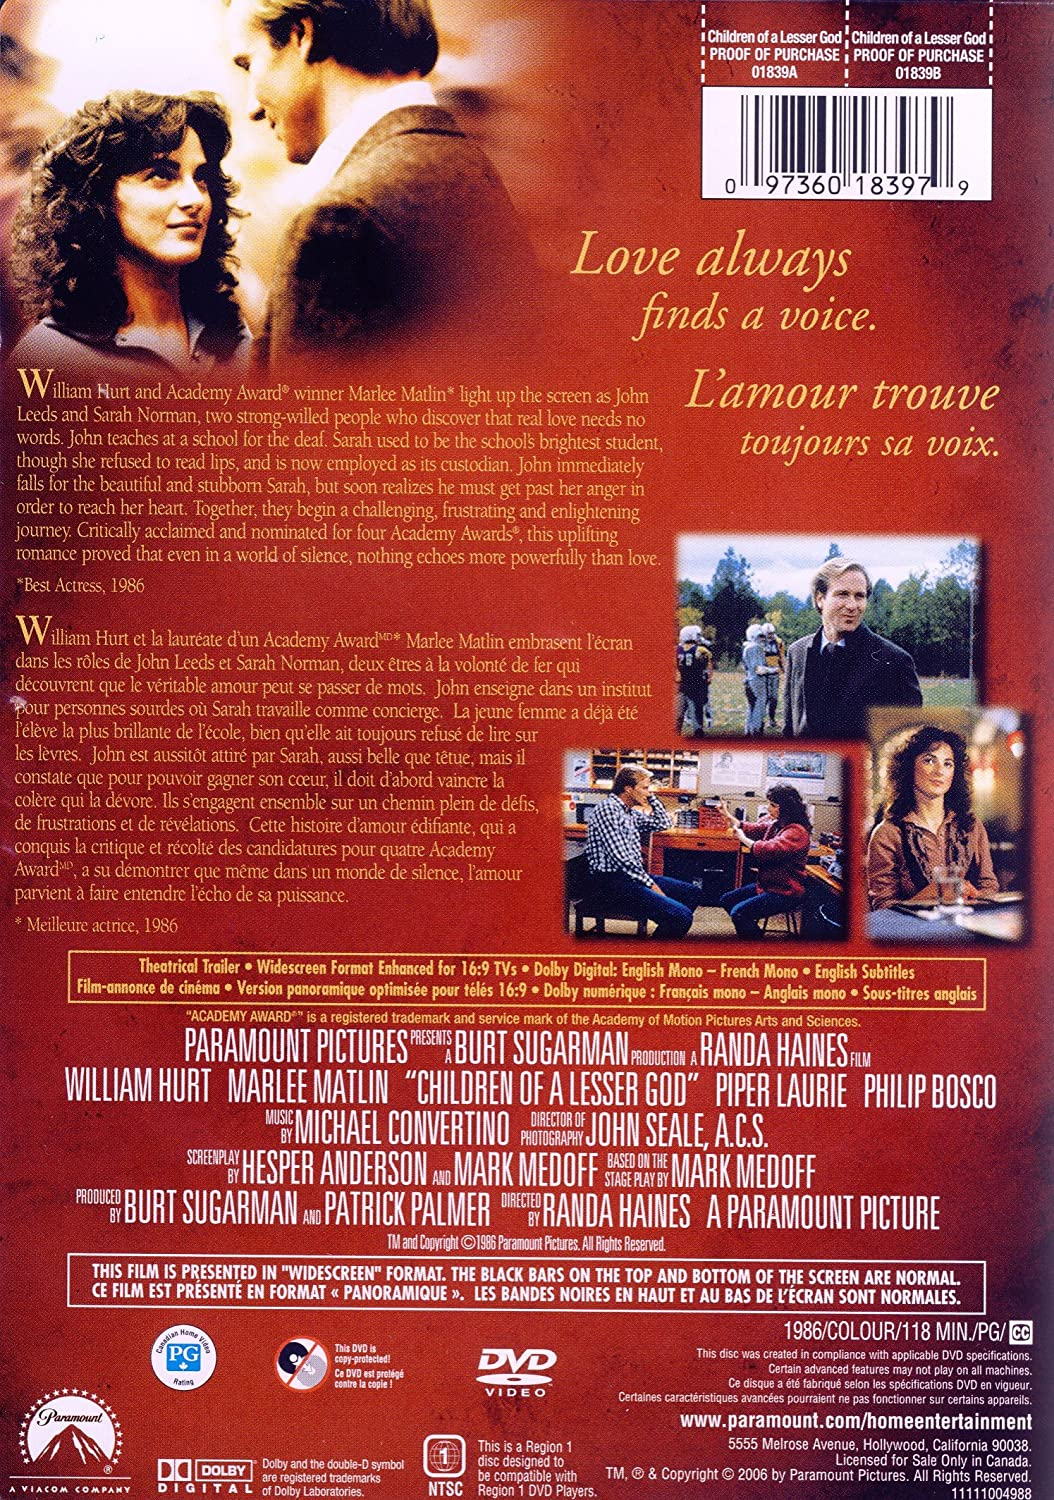 Amazon Children Of A Lesser God William Hurt Marlee Matlin Piper Laurie Philip Bosco Allison Gompf John F Cleary Holmes